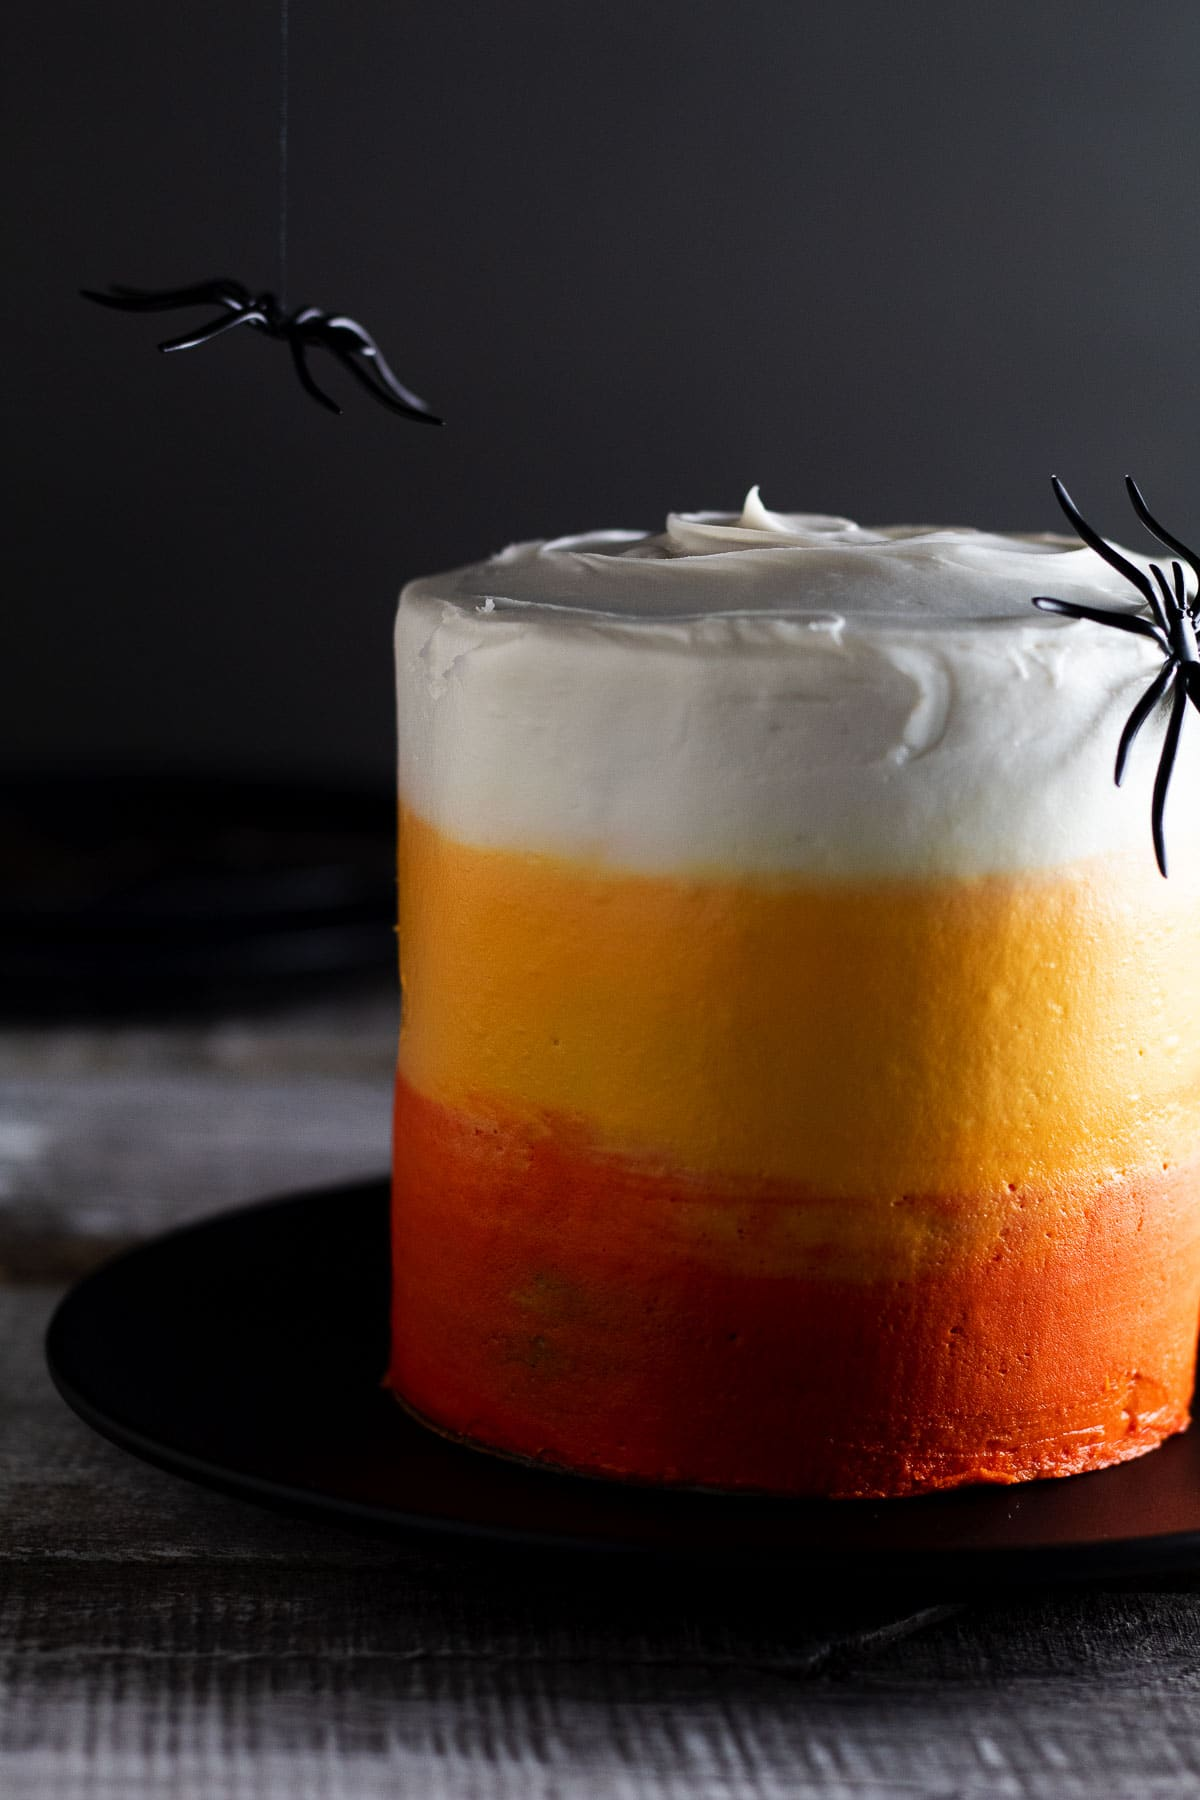 This is our beautiful Halloween Ombre cake mini's made in the air fryer with toy spiders hanging.